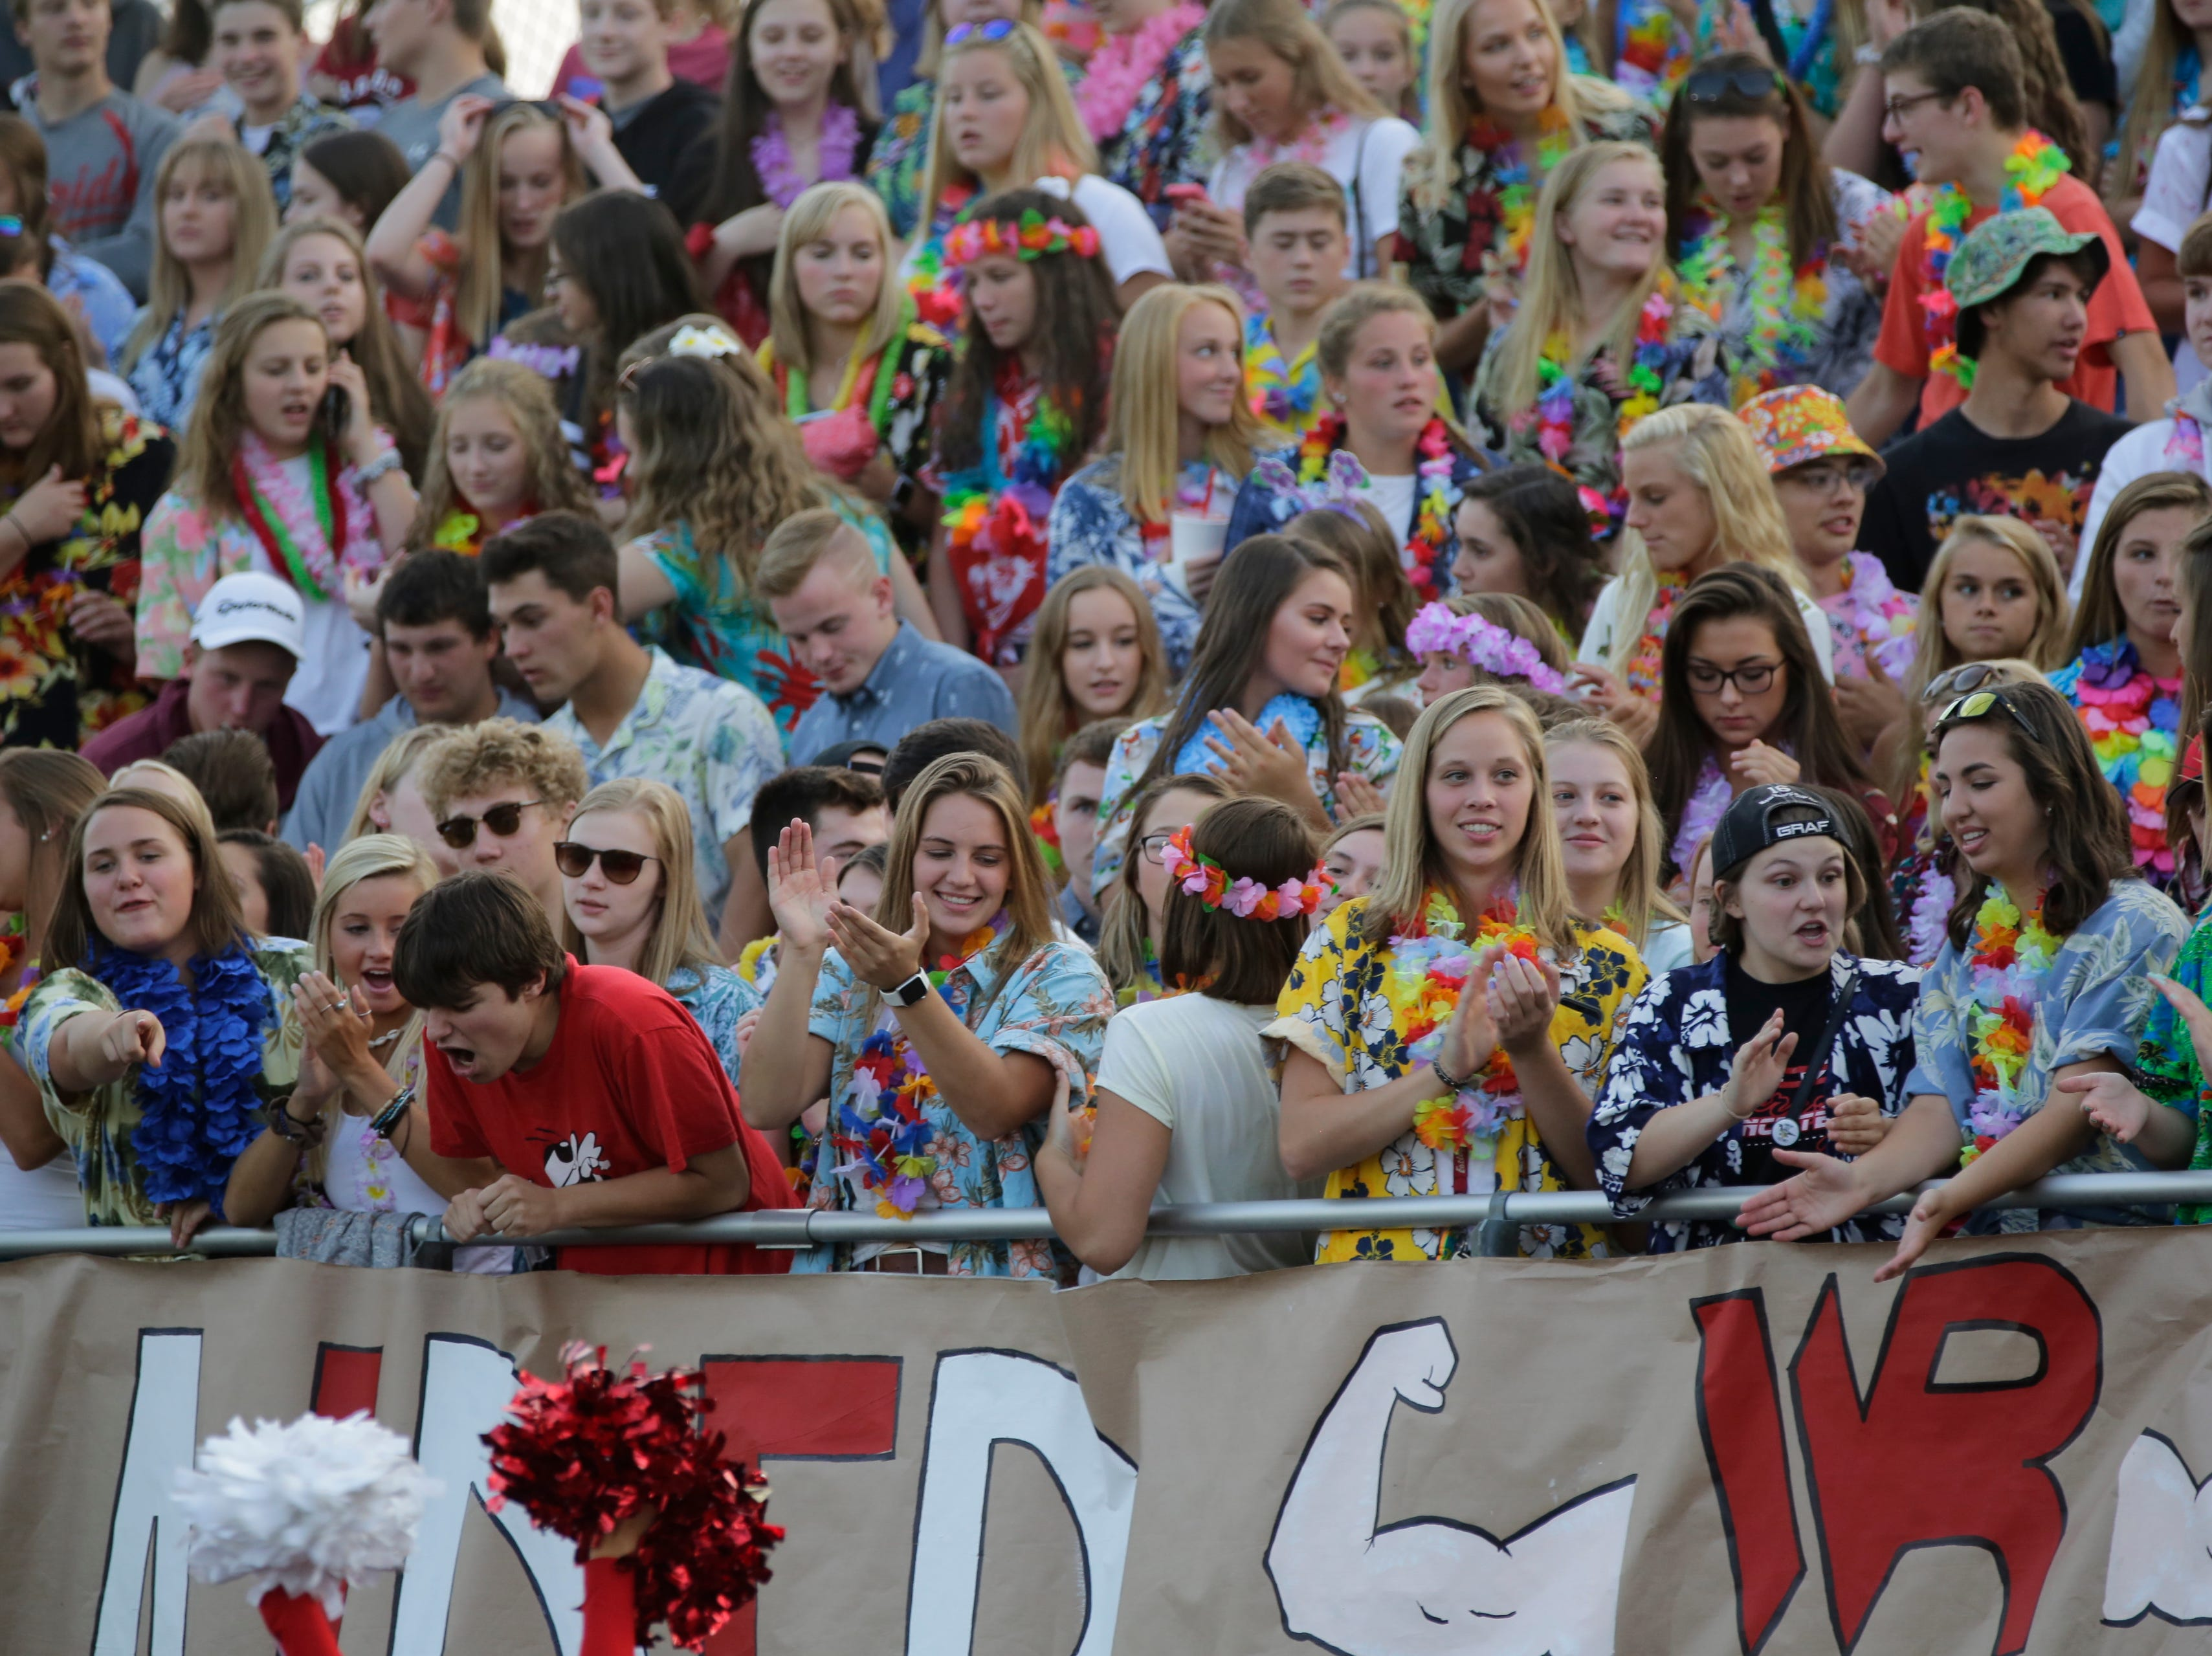 The Wisconsin Rapids student section cheers during a game between Wisconsin Rapids and Kimberly at Wisconsin Rapids Lincoln High School Thursday, August 23, 2018.